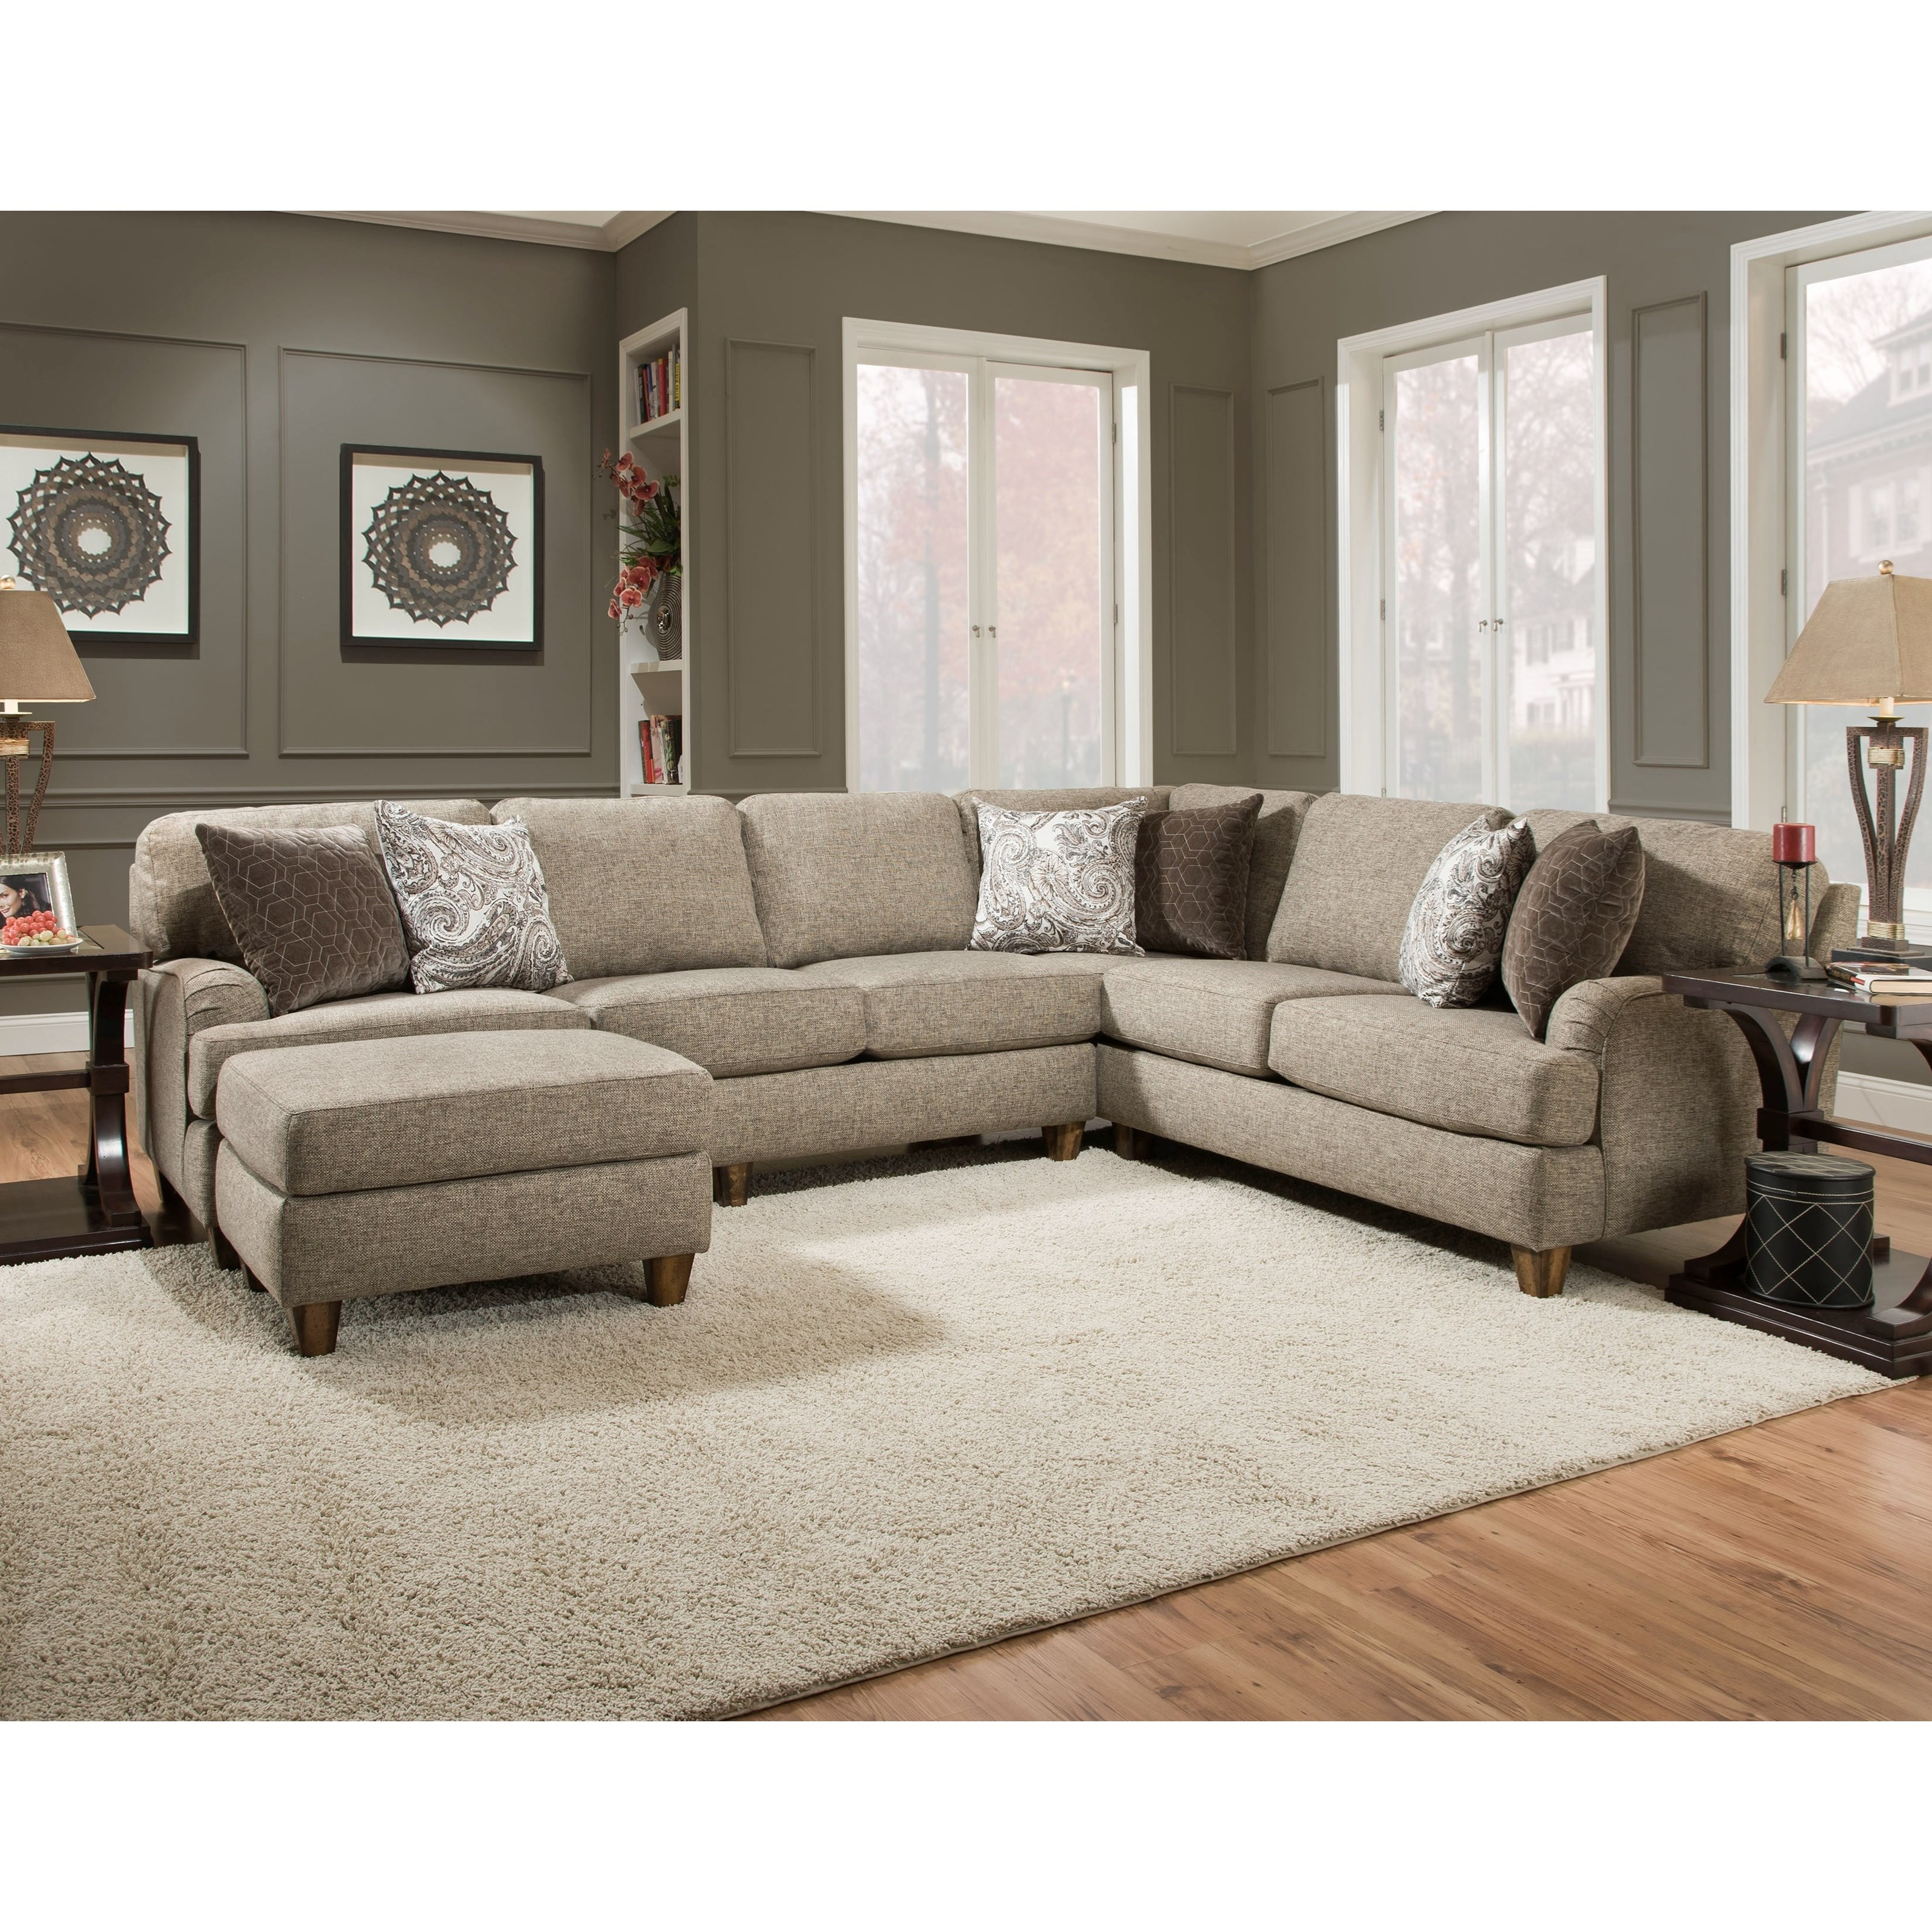 Brannon Sectional Sofa with 5 Seats by Franklin at Furniture Superstore - Rochester, MN